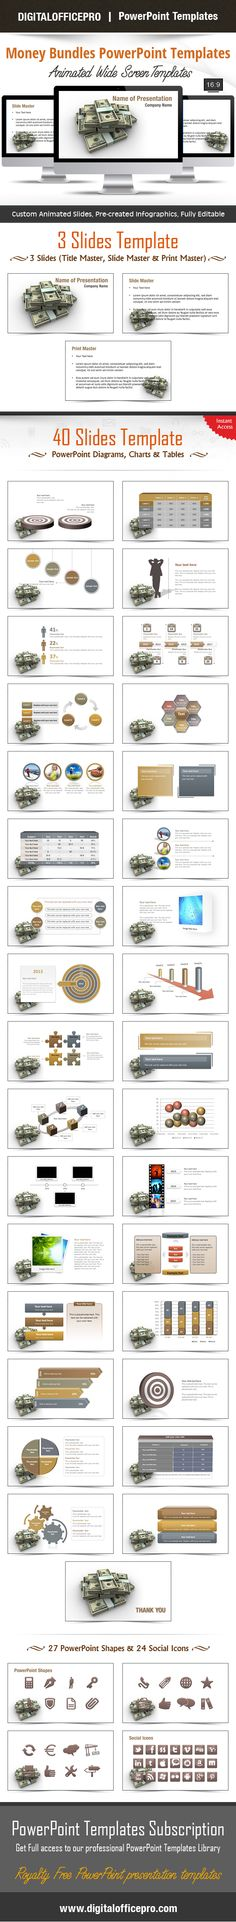 Impress and Engage your audience with Money Bundles PowerPoint Template and Money Bundles PowerPoint Backgrounds from DigitalOfficePro. Each template comes with a set of PowerPoint Diagrams, Charts & Shapes and are available for instant download.